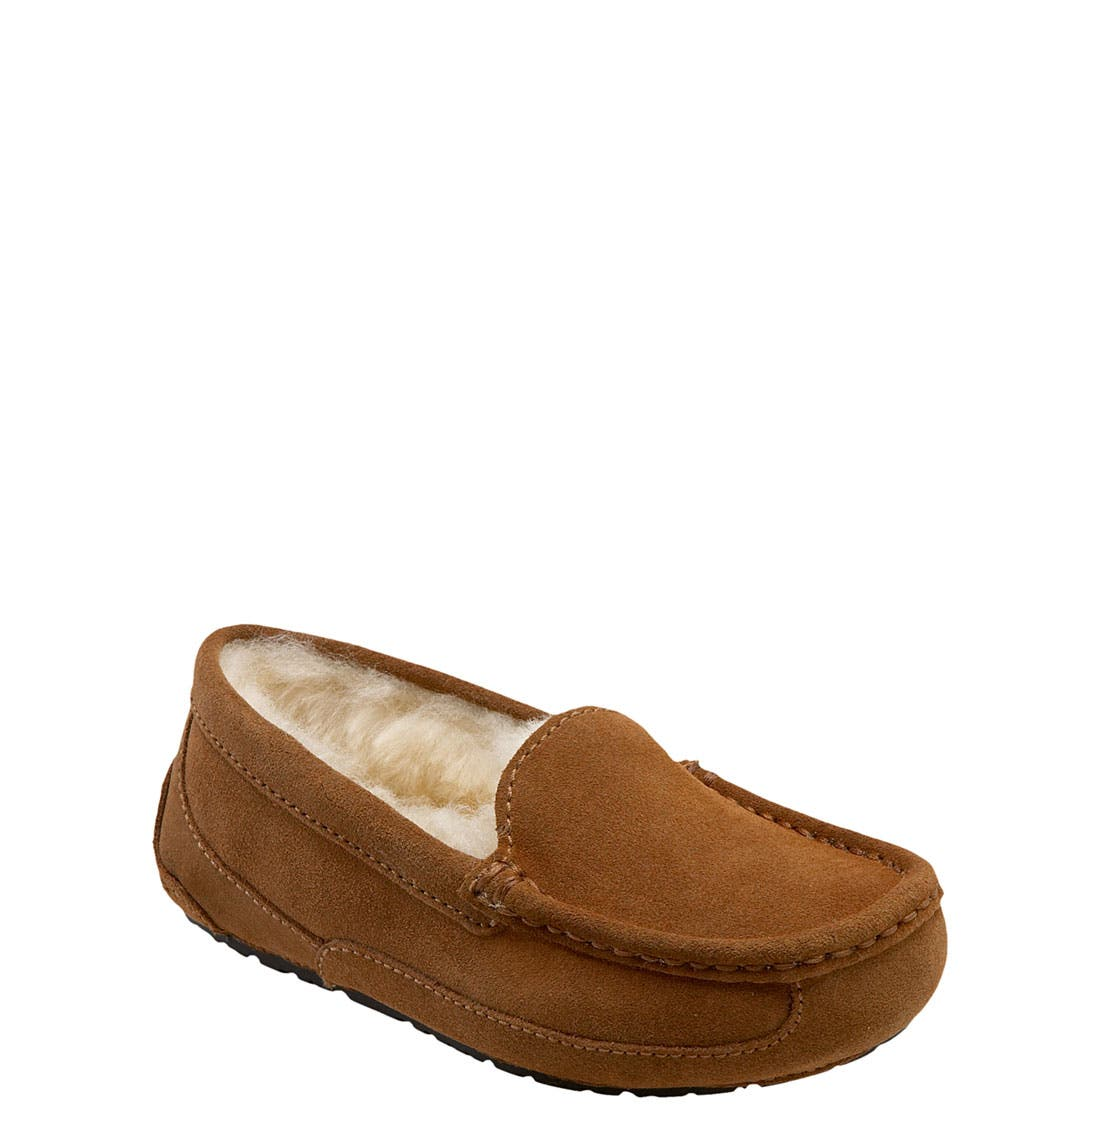 Alternate Image 1 Selected - UGG® Ascot Slipper (Toddler, Little Kid & Big Kid)